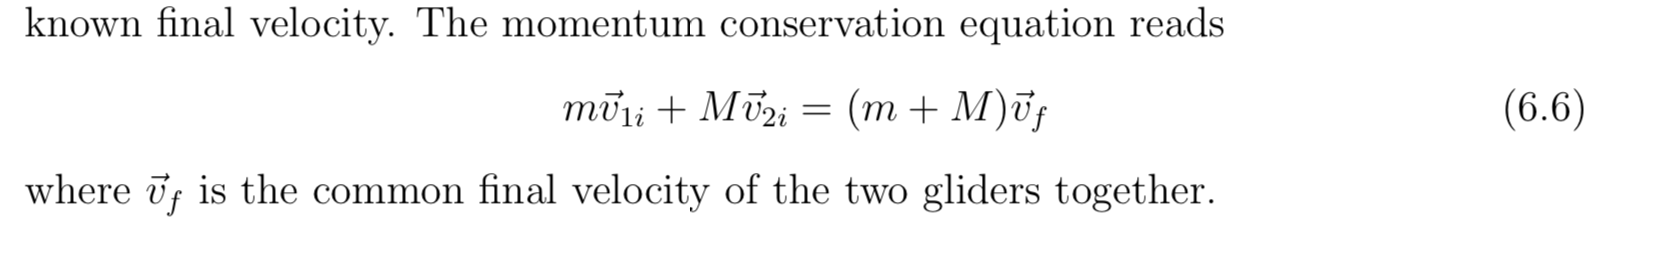 known final velocity. The momentum conservation equation reads (m + M)ūj (6.6) moliMi where f is the common final velocity of the two gliders together